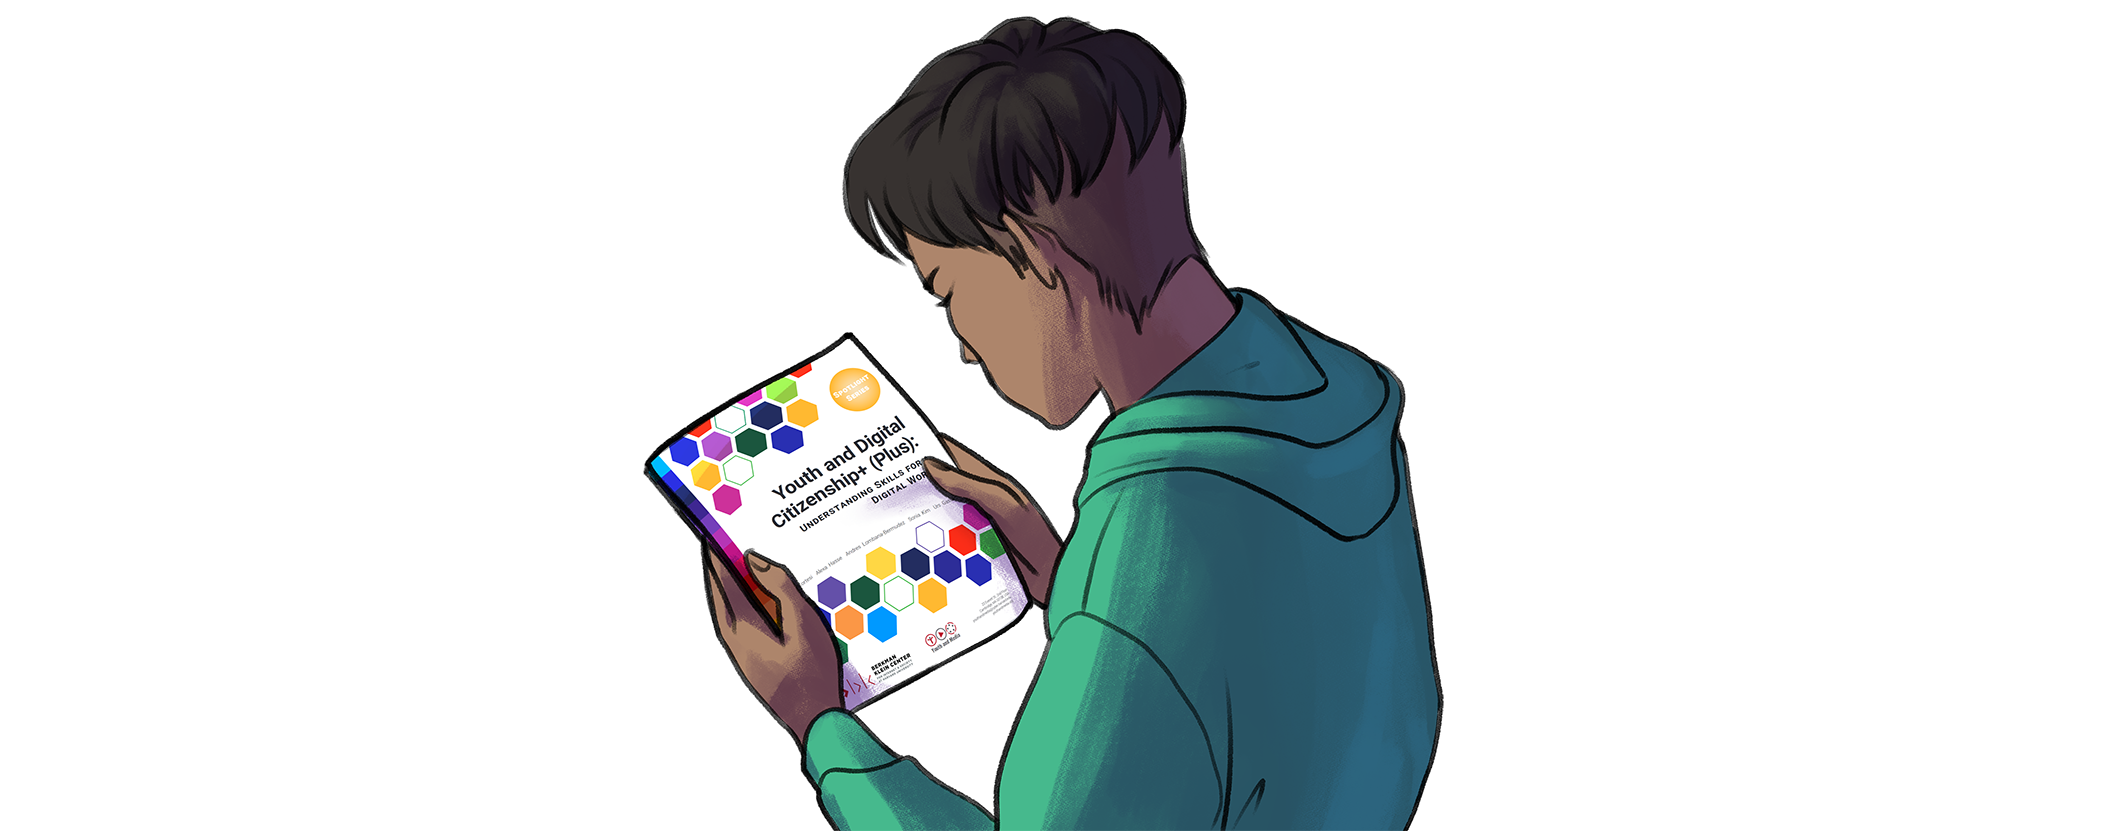 Illustration of a young person reading the digital citizenship report